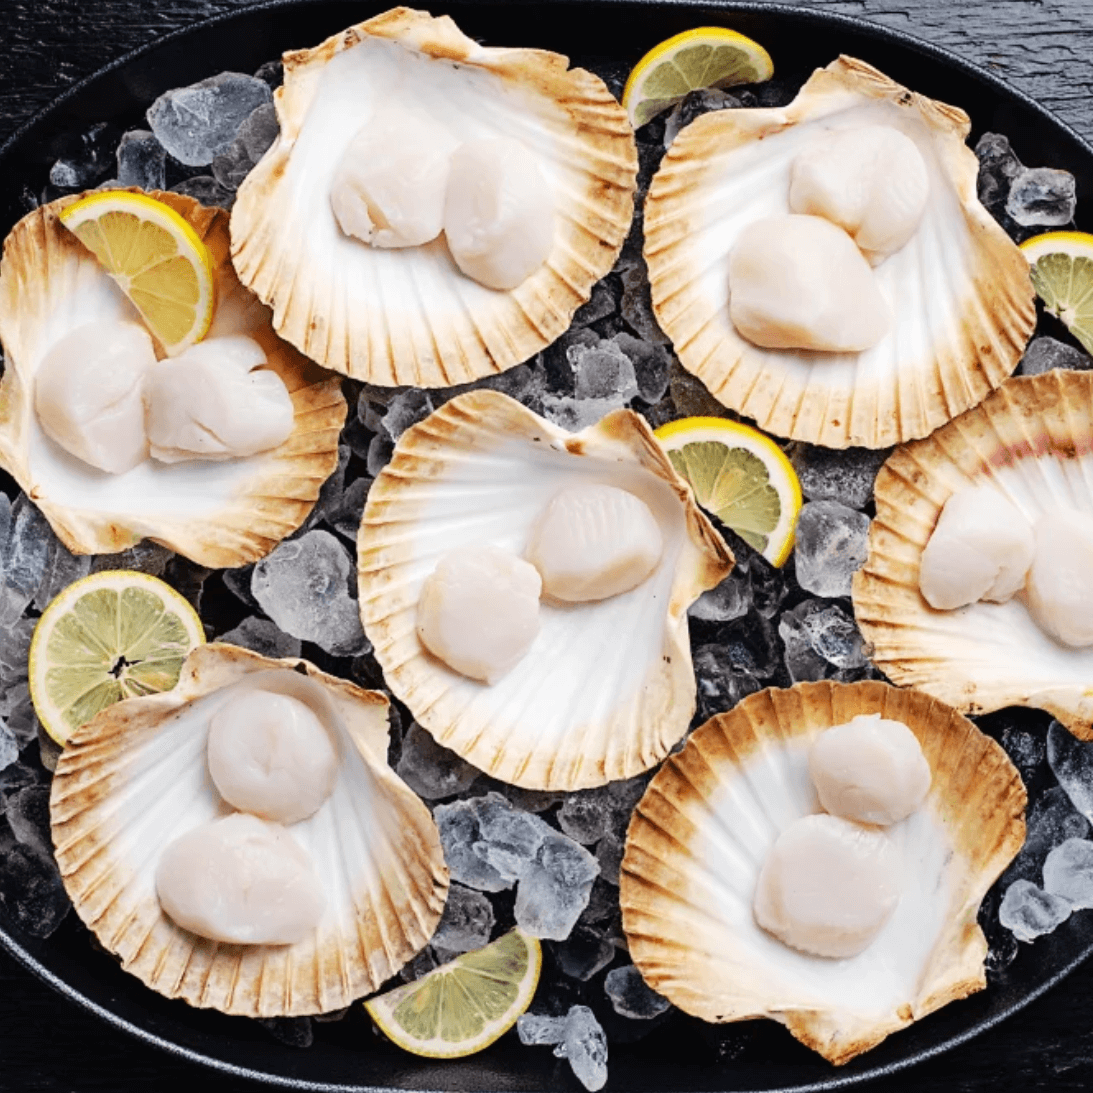 Goodfood sustainably caught wild scallops in shell on ice